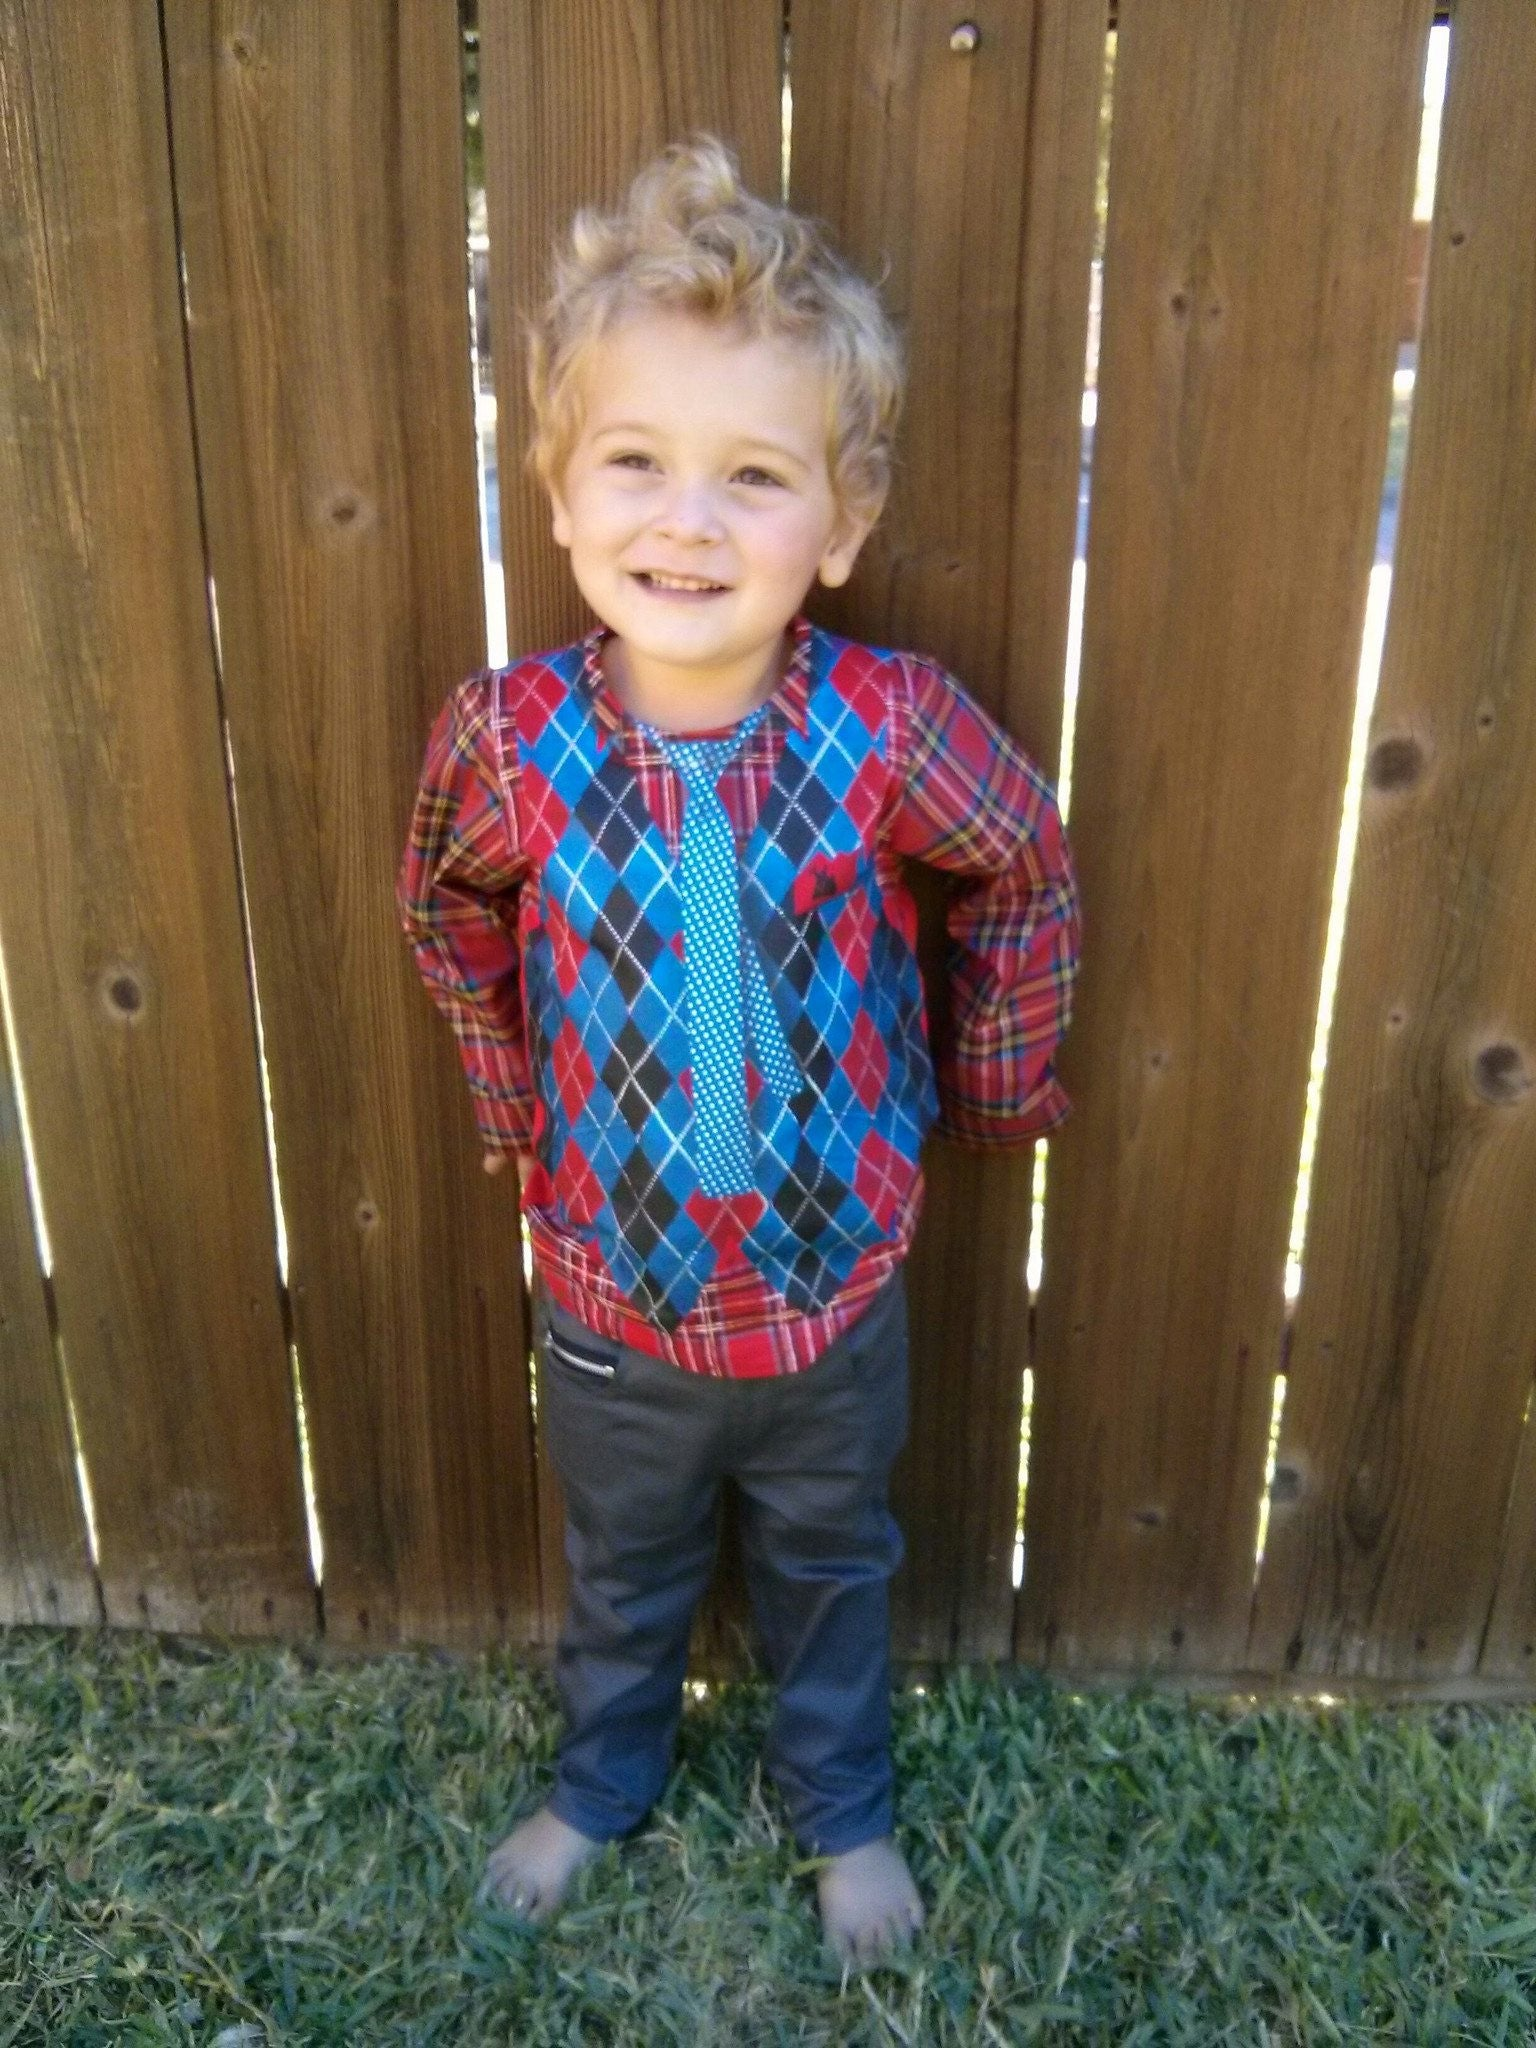 c068d3423 Brown Long Sleeve Shirt For Toddler Boy – EDGE Engineering and ...